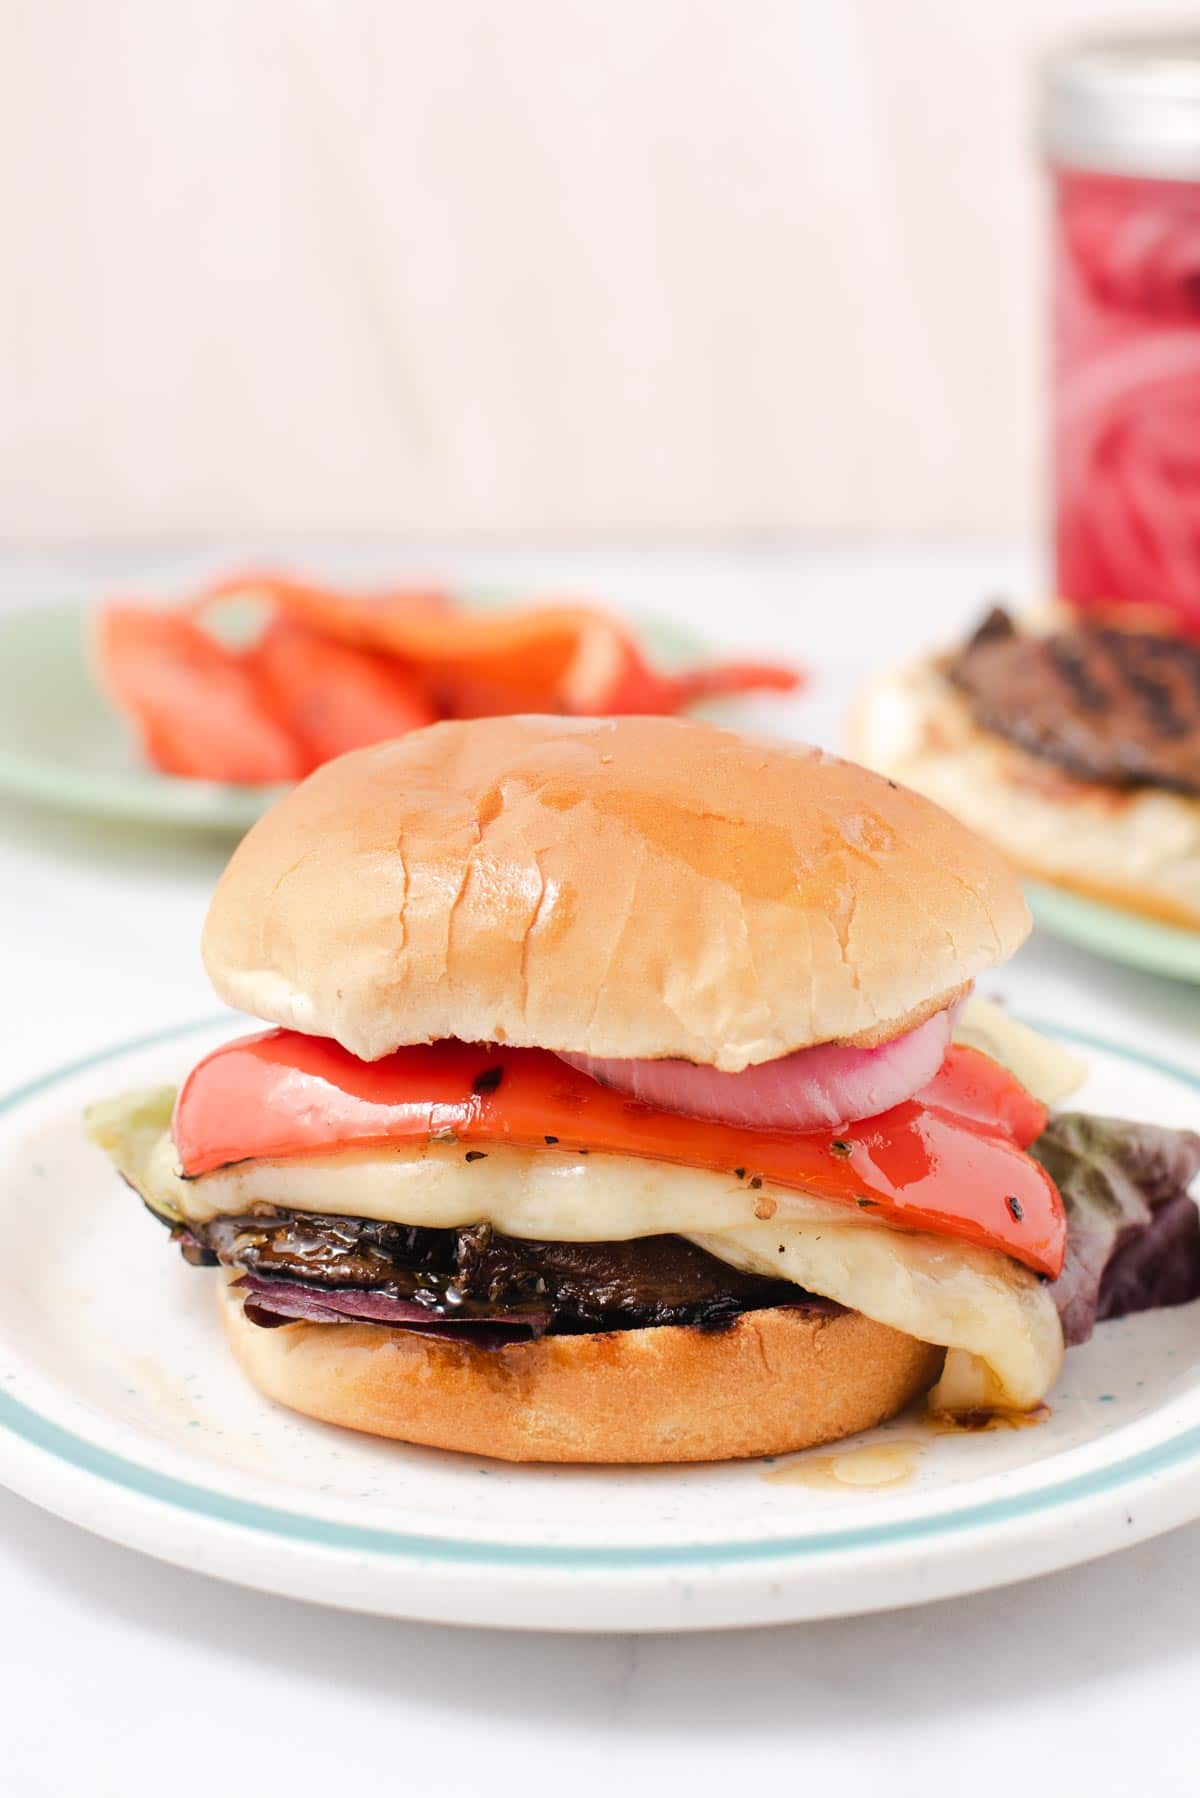 Mushroom burger topped with red bell pepper and melting cheese on a white plate